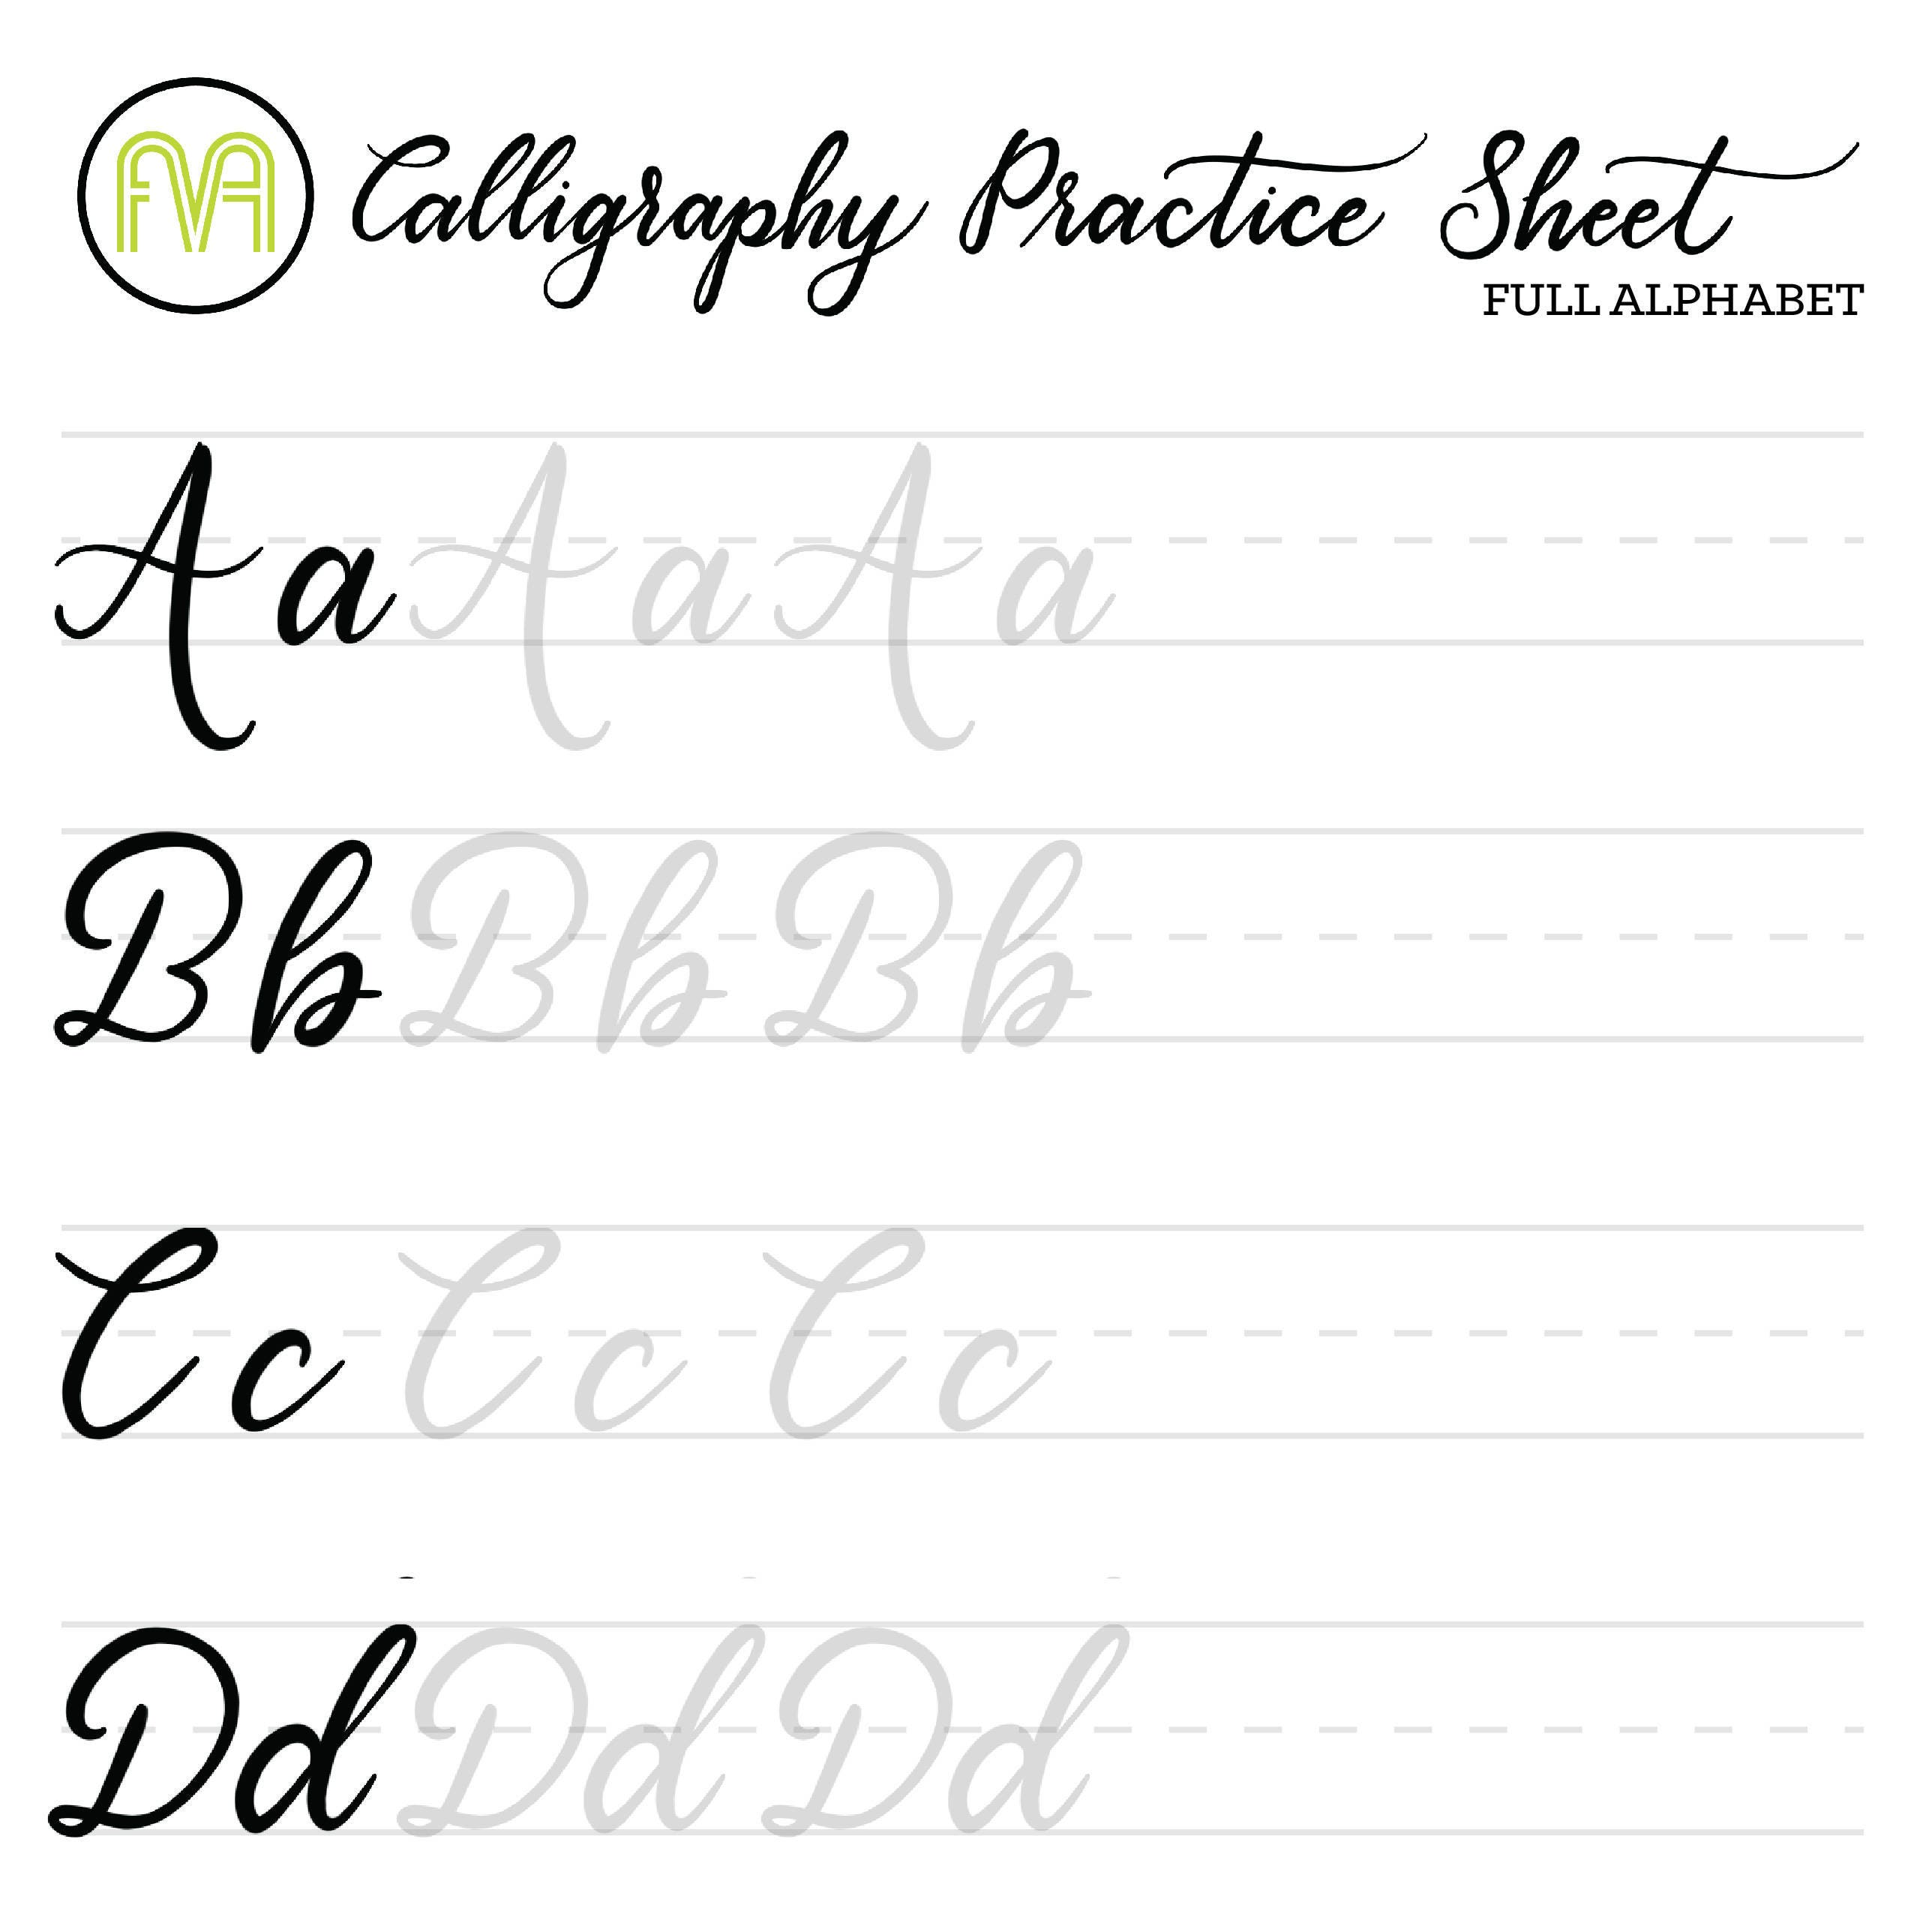 image regarding Printable Calligraphy Practice Sheets named Calligraphy Educate Sheets Finish Alphabet Lettering Electronic Down load  Printable